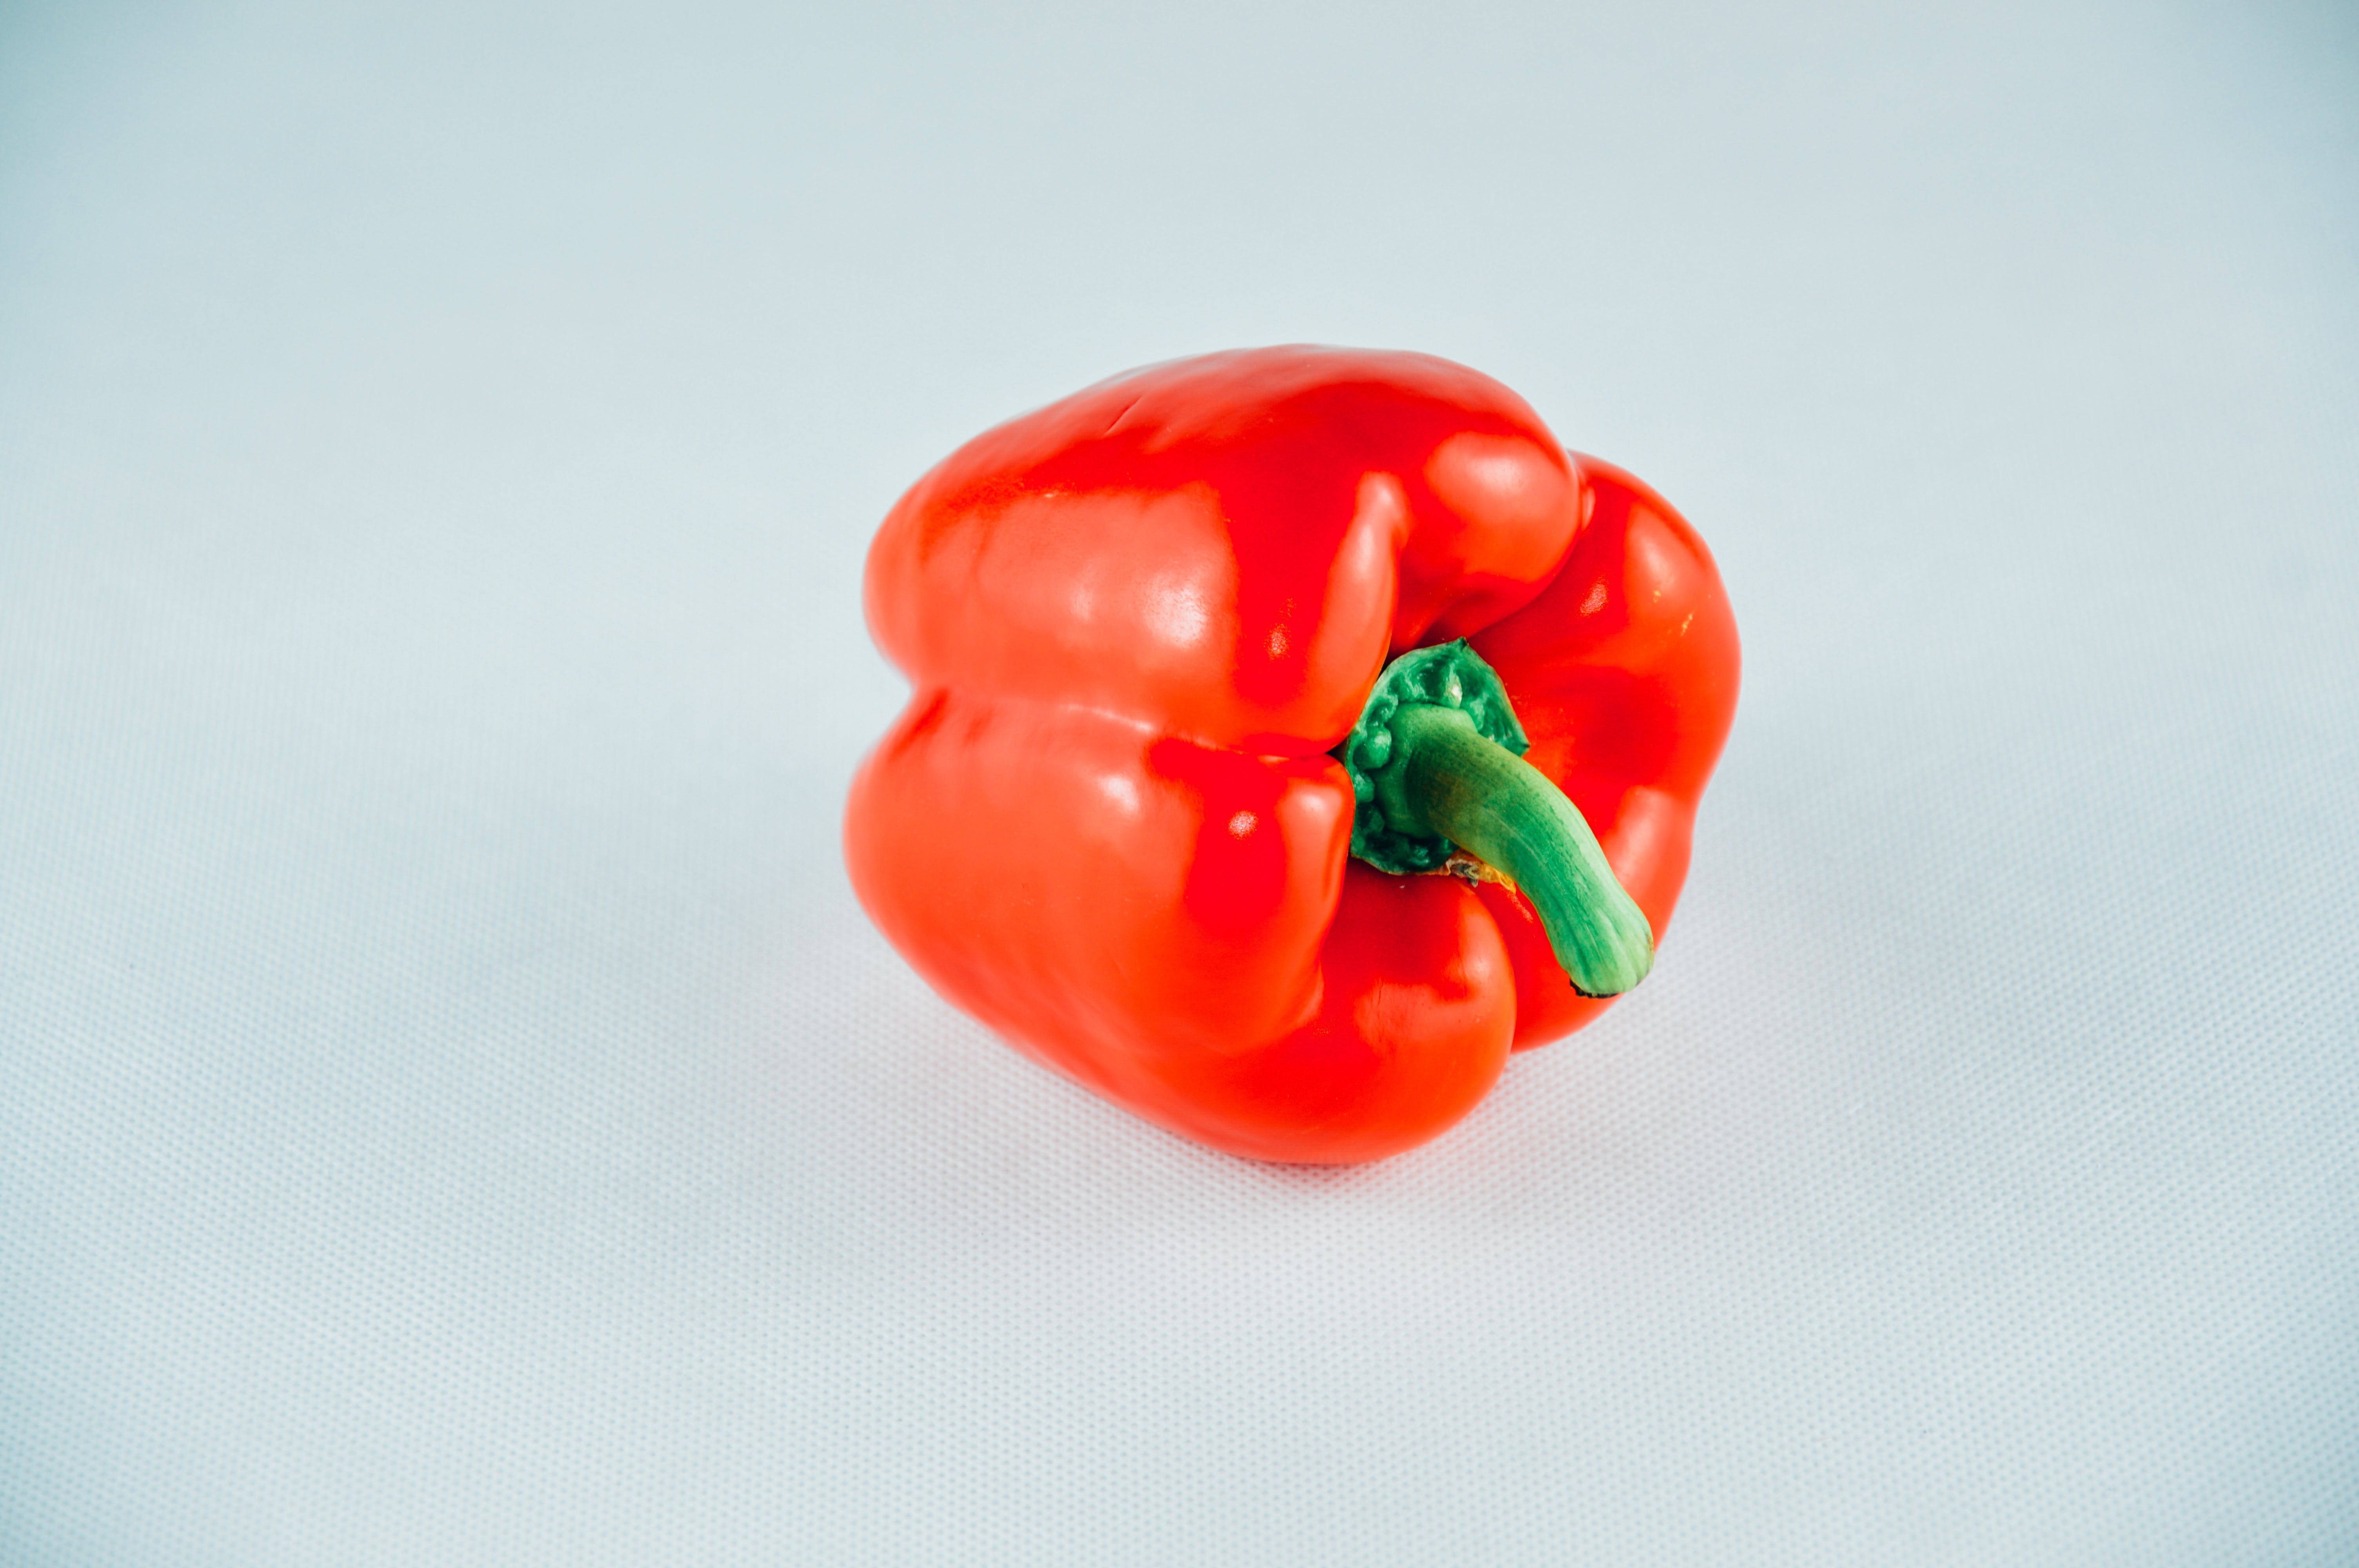 Red Bell Pepper on White Surface